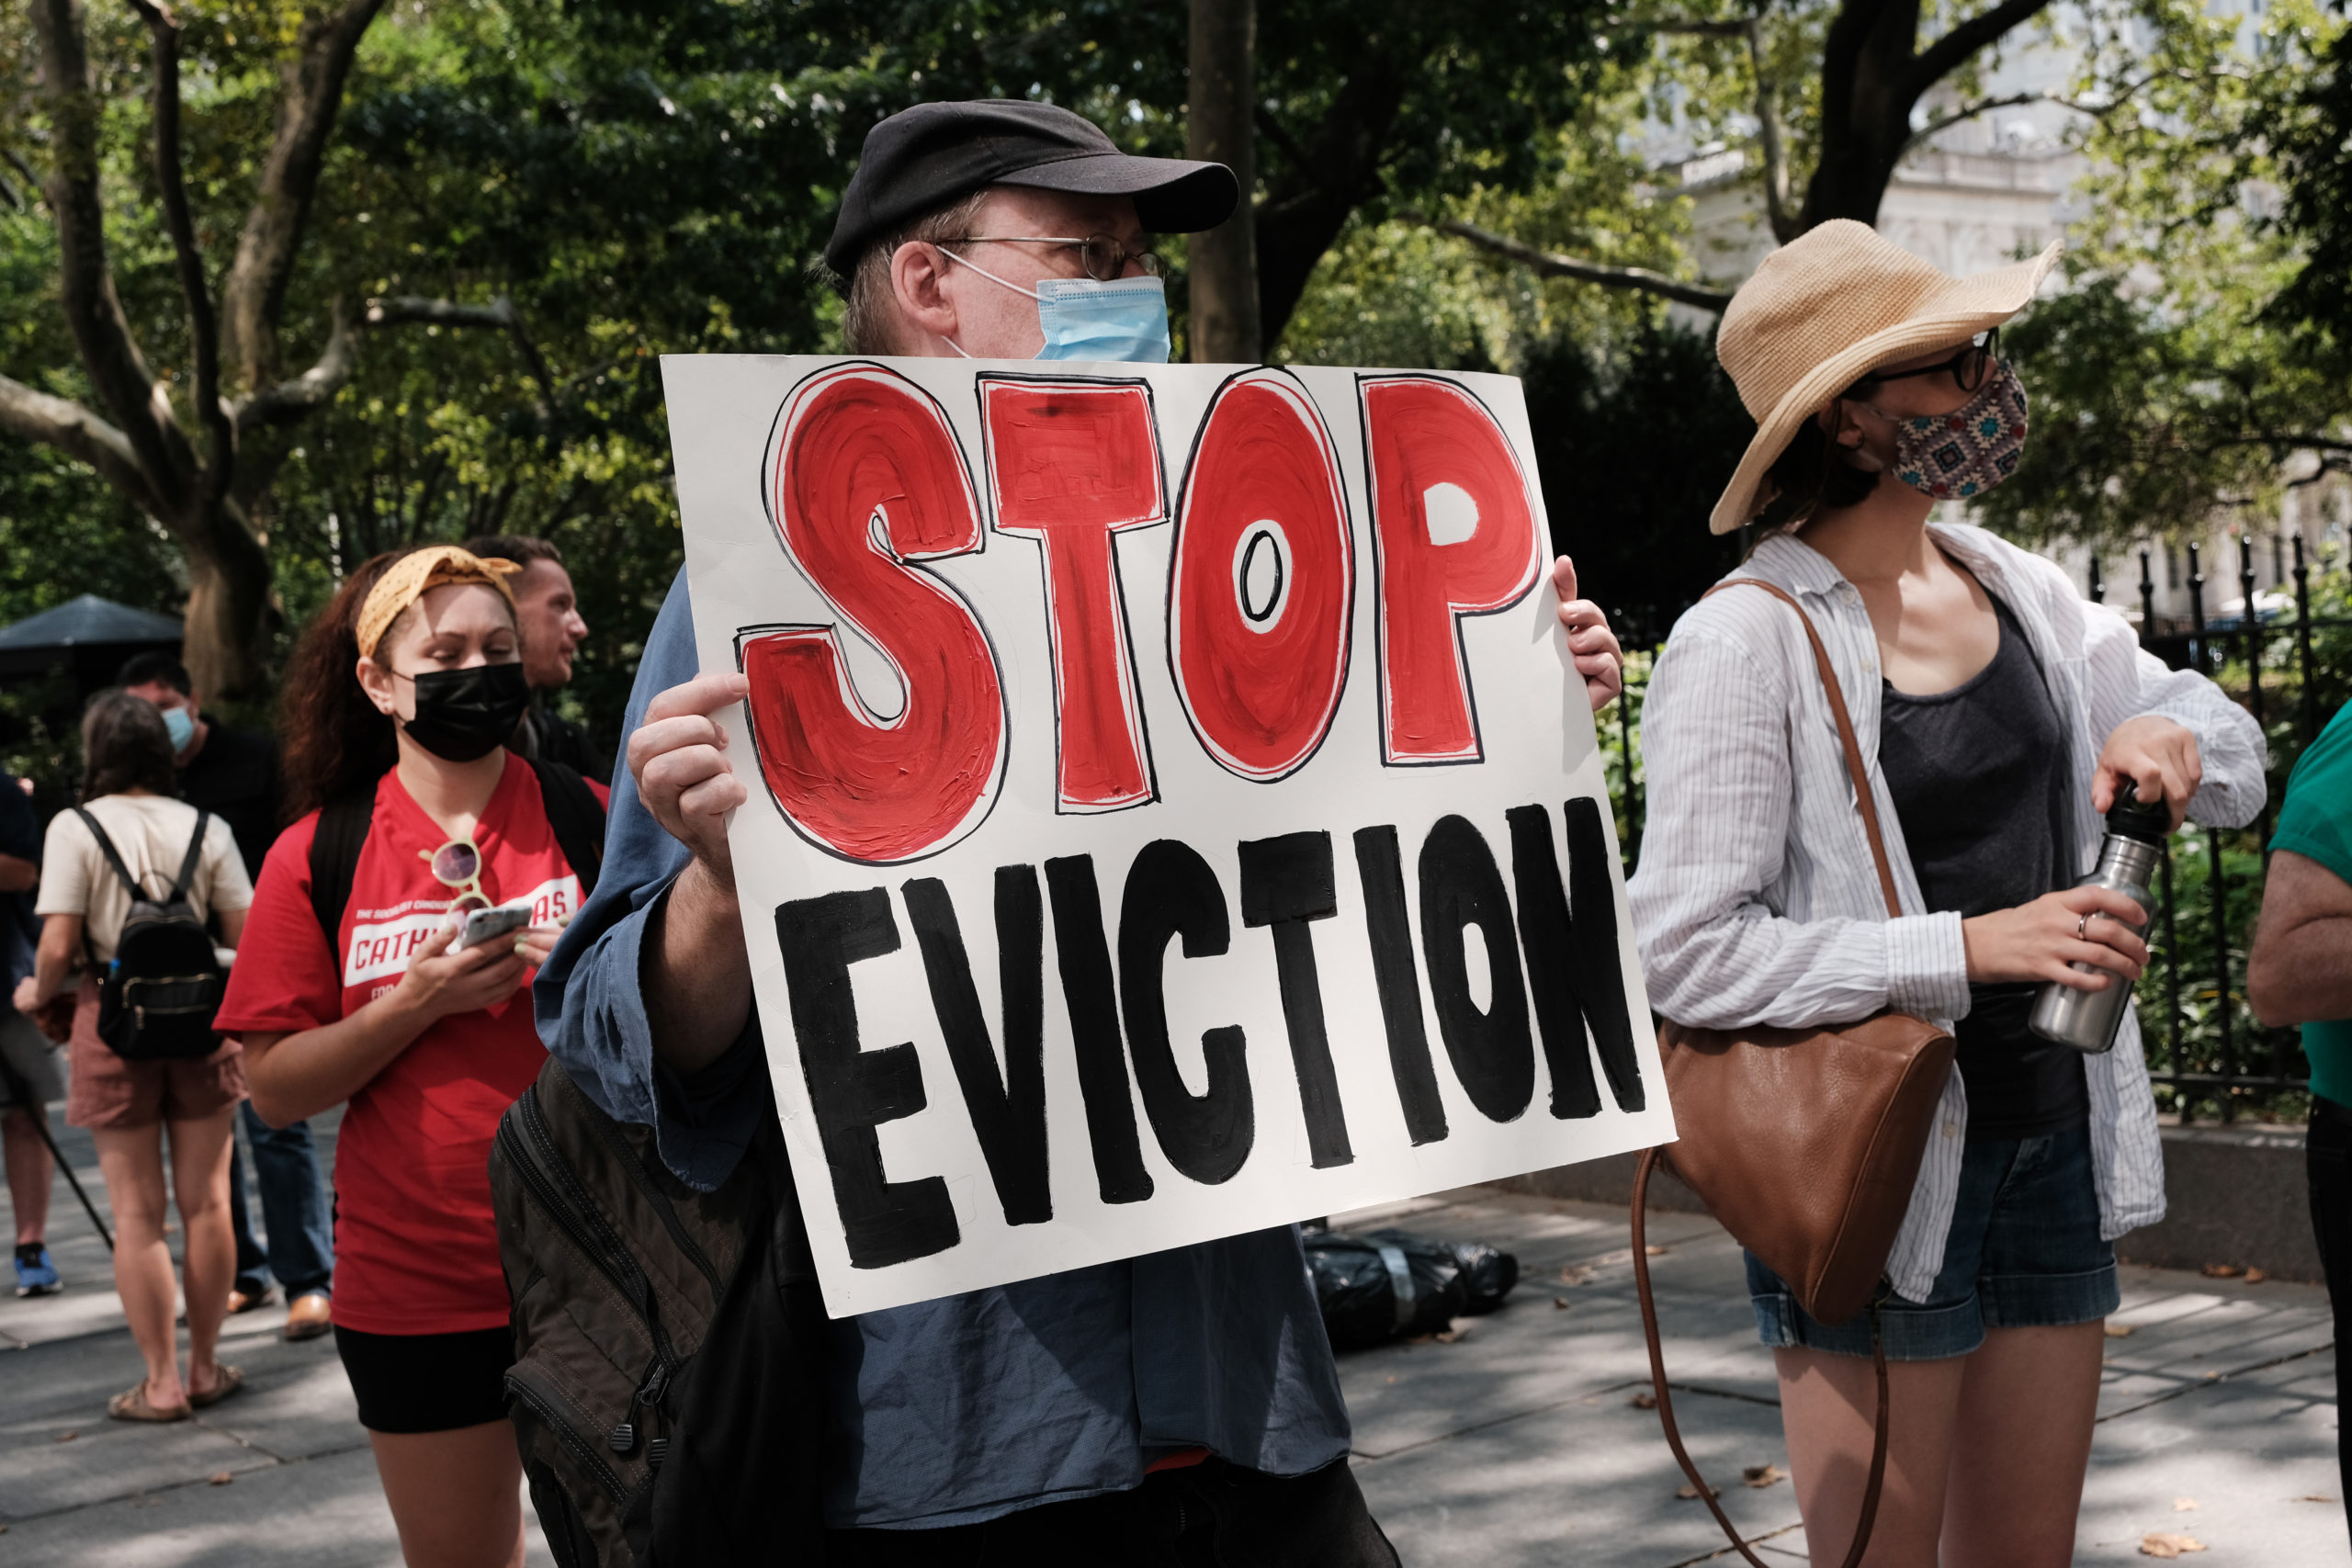 Activists hold a protest against evictions on Aug. 11 in New York City. (Spencer Platt/Getty Images)